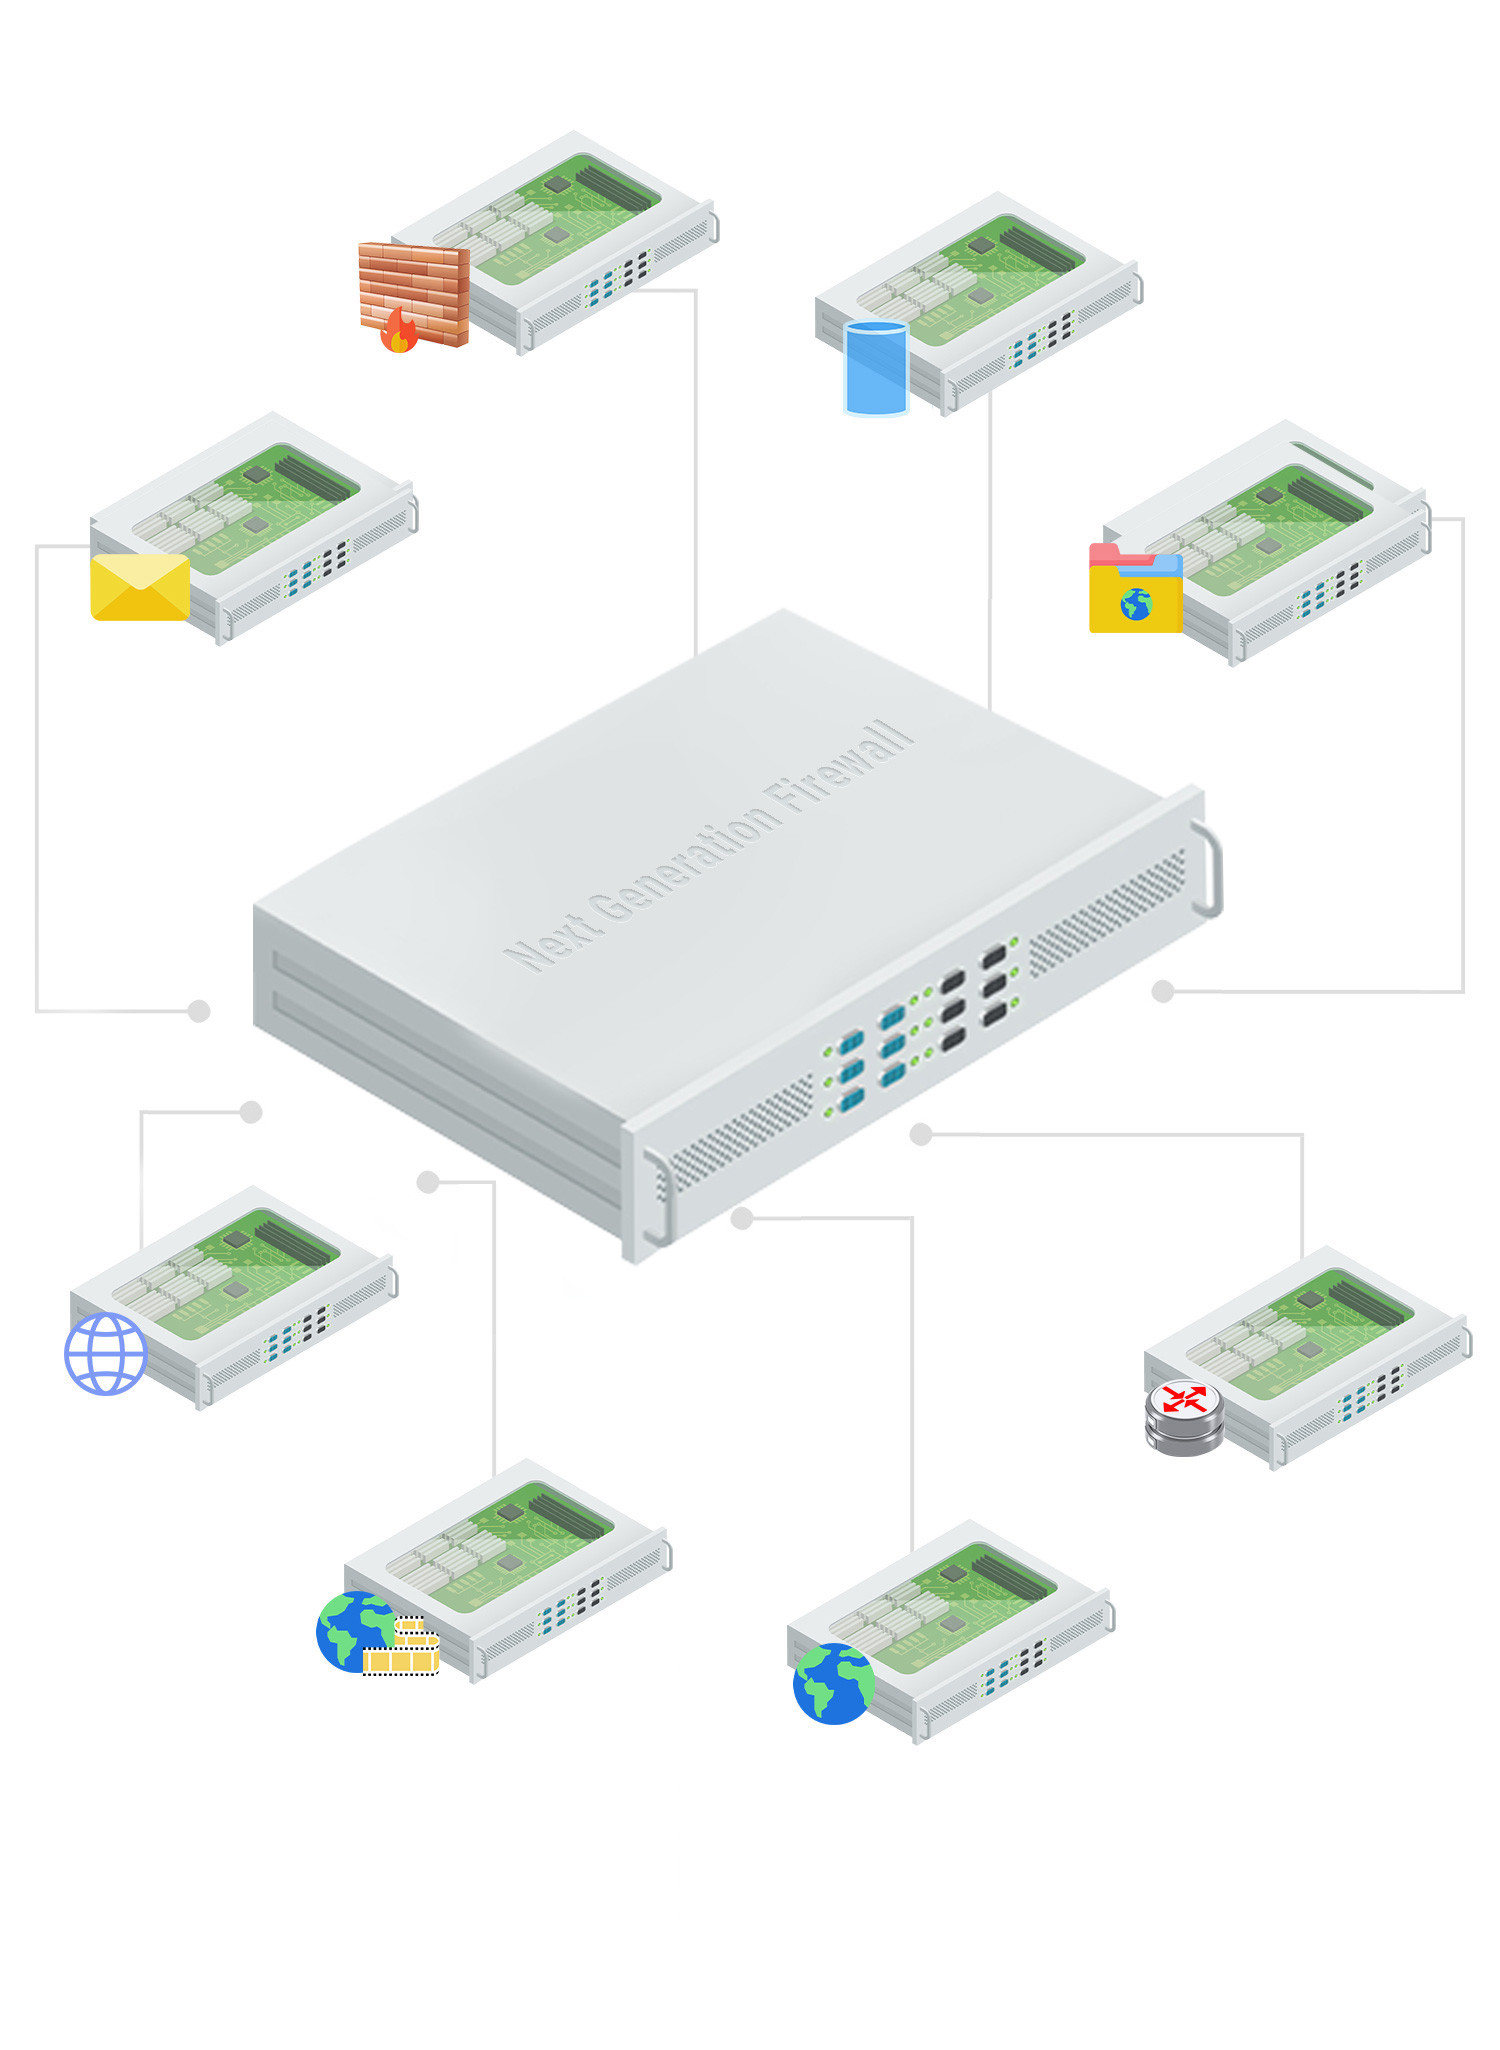 Next Generation Firewall (NGFW)